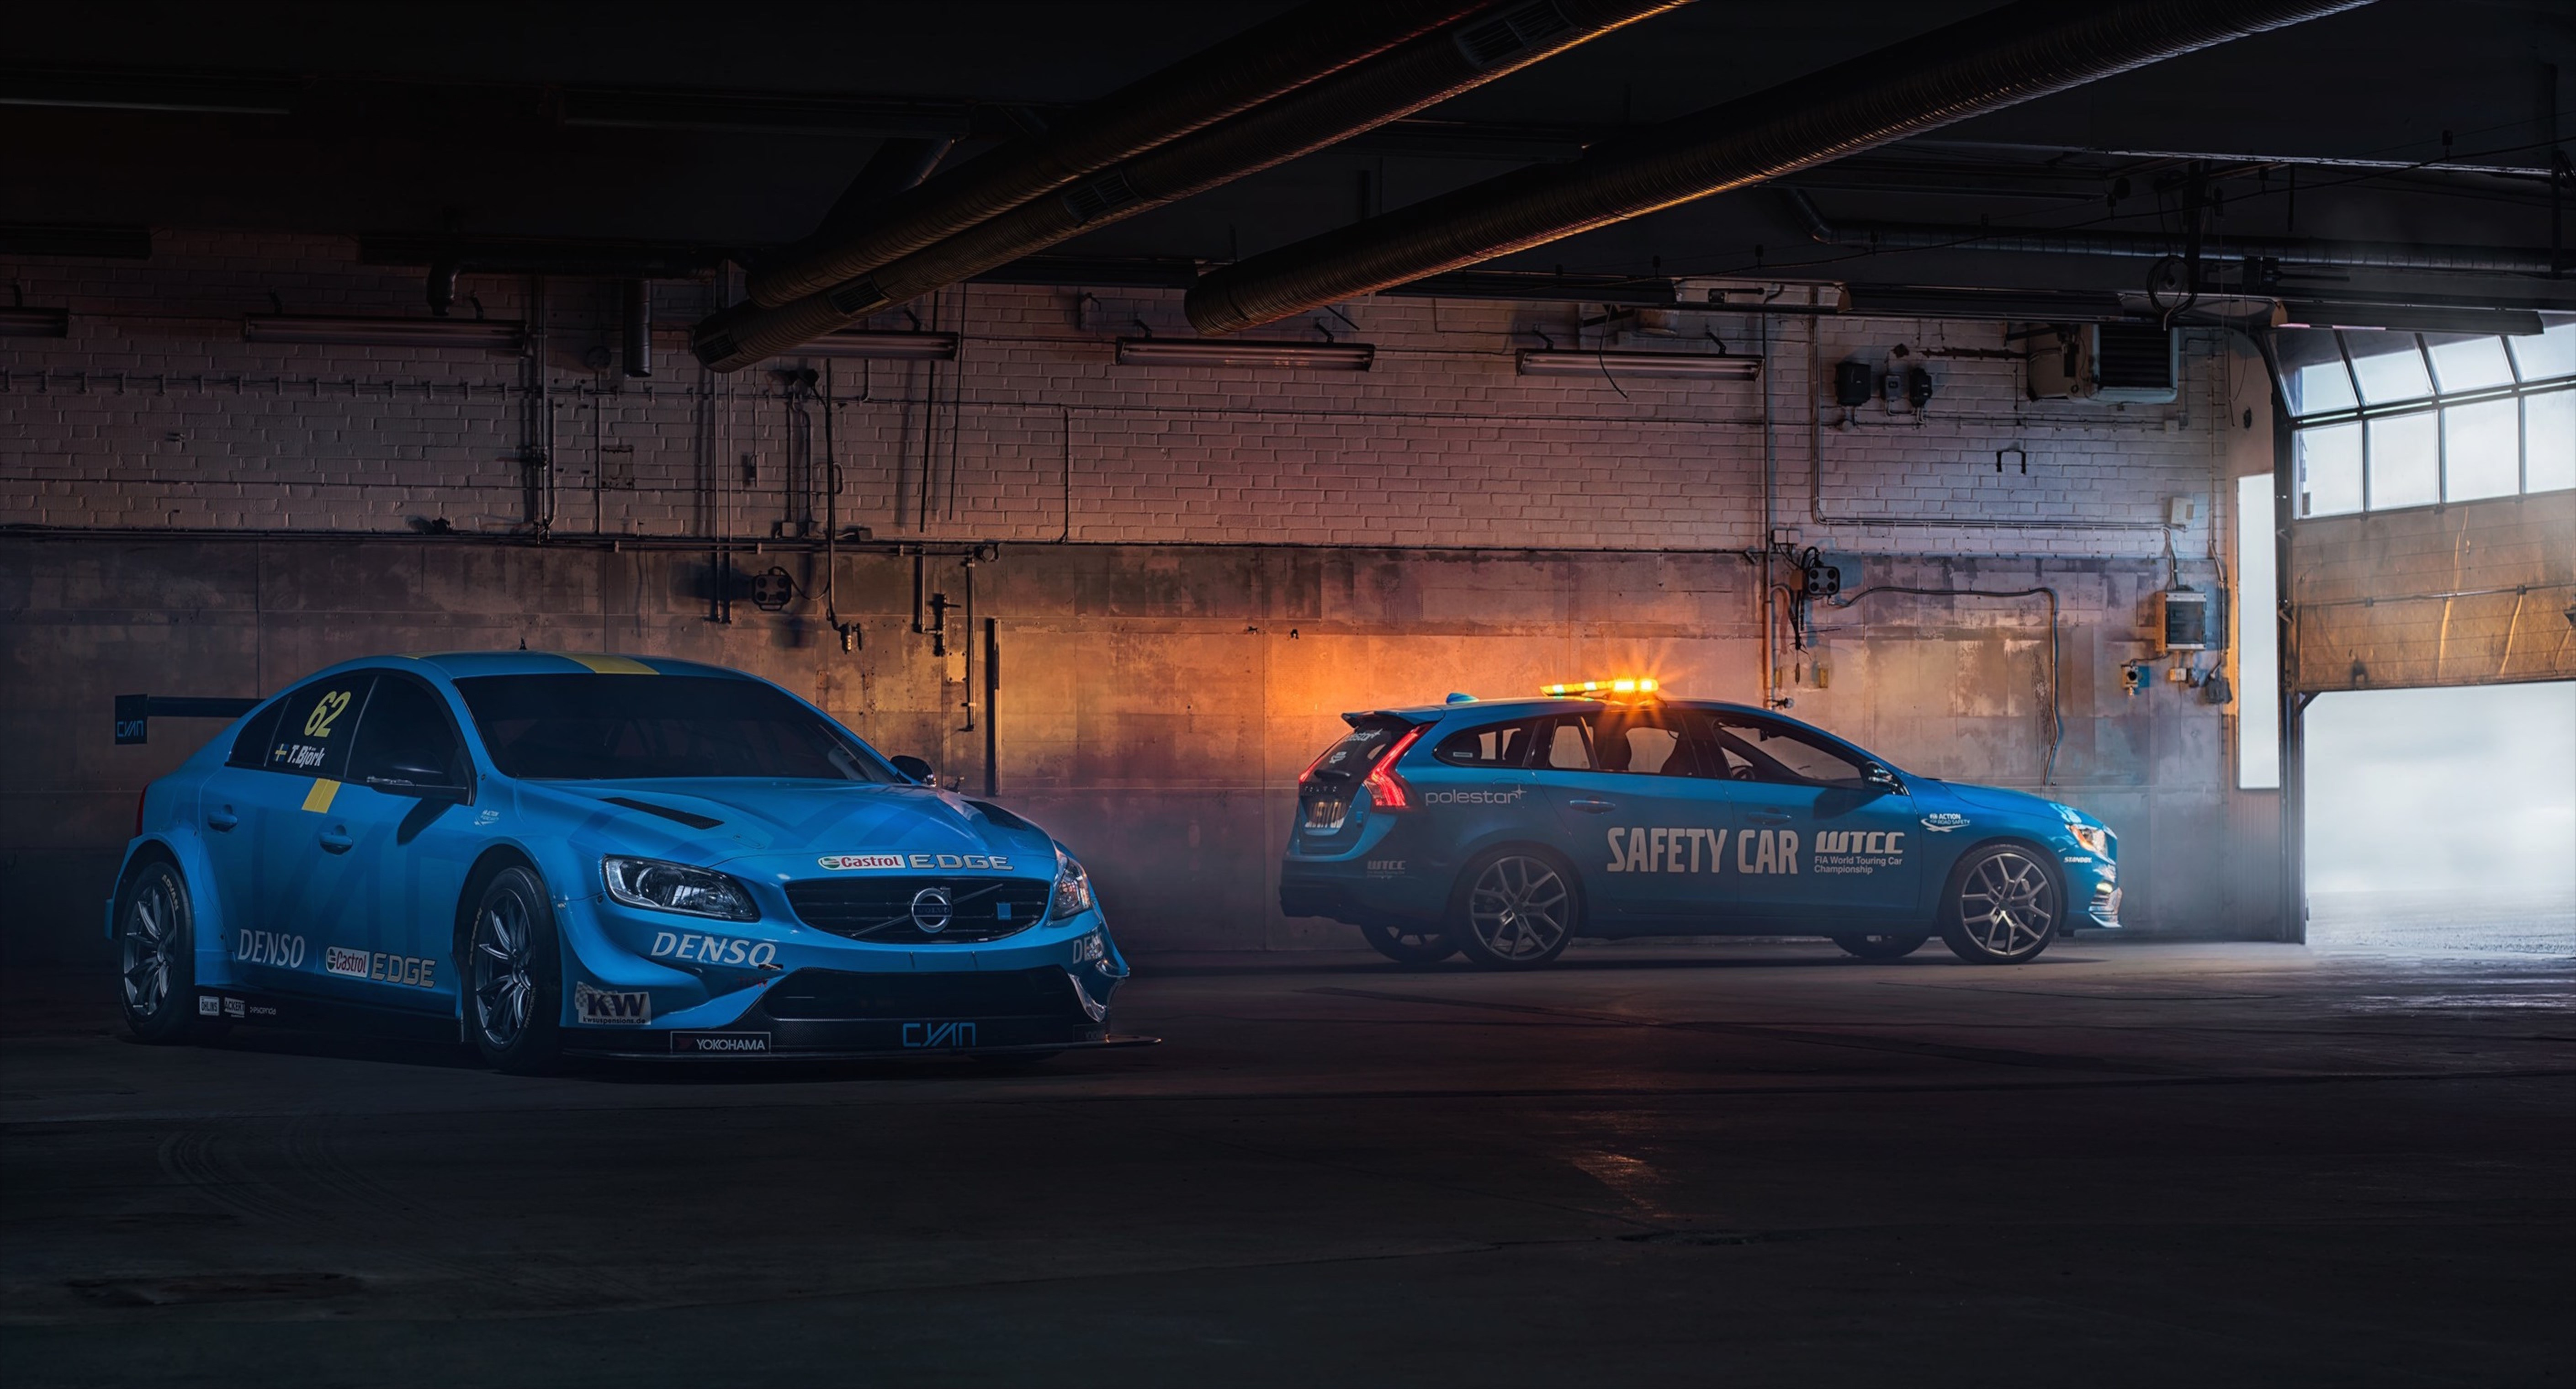 Quotes Wallpaper For Mac Wallpaper Volvo V60 Polestar Wtcc Safety Car Cars